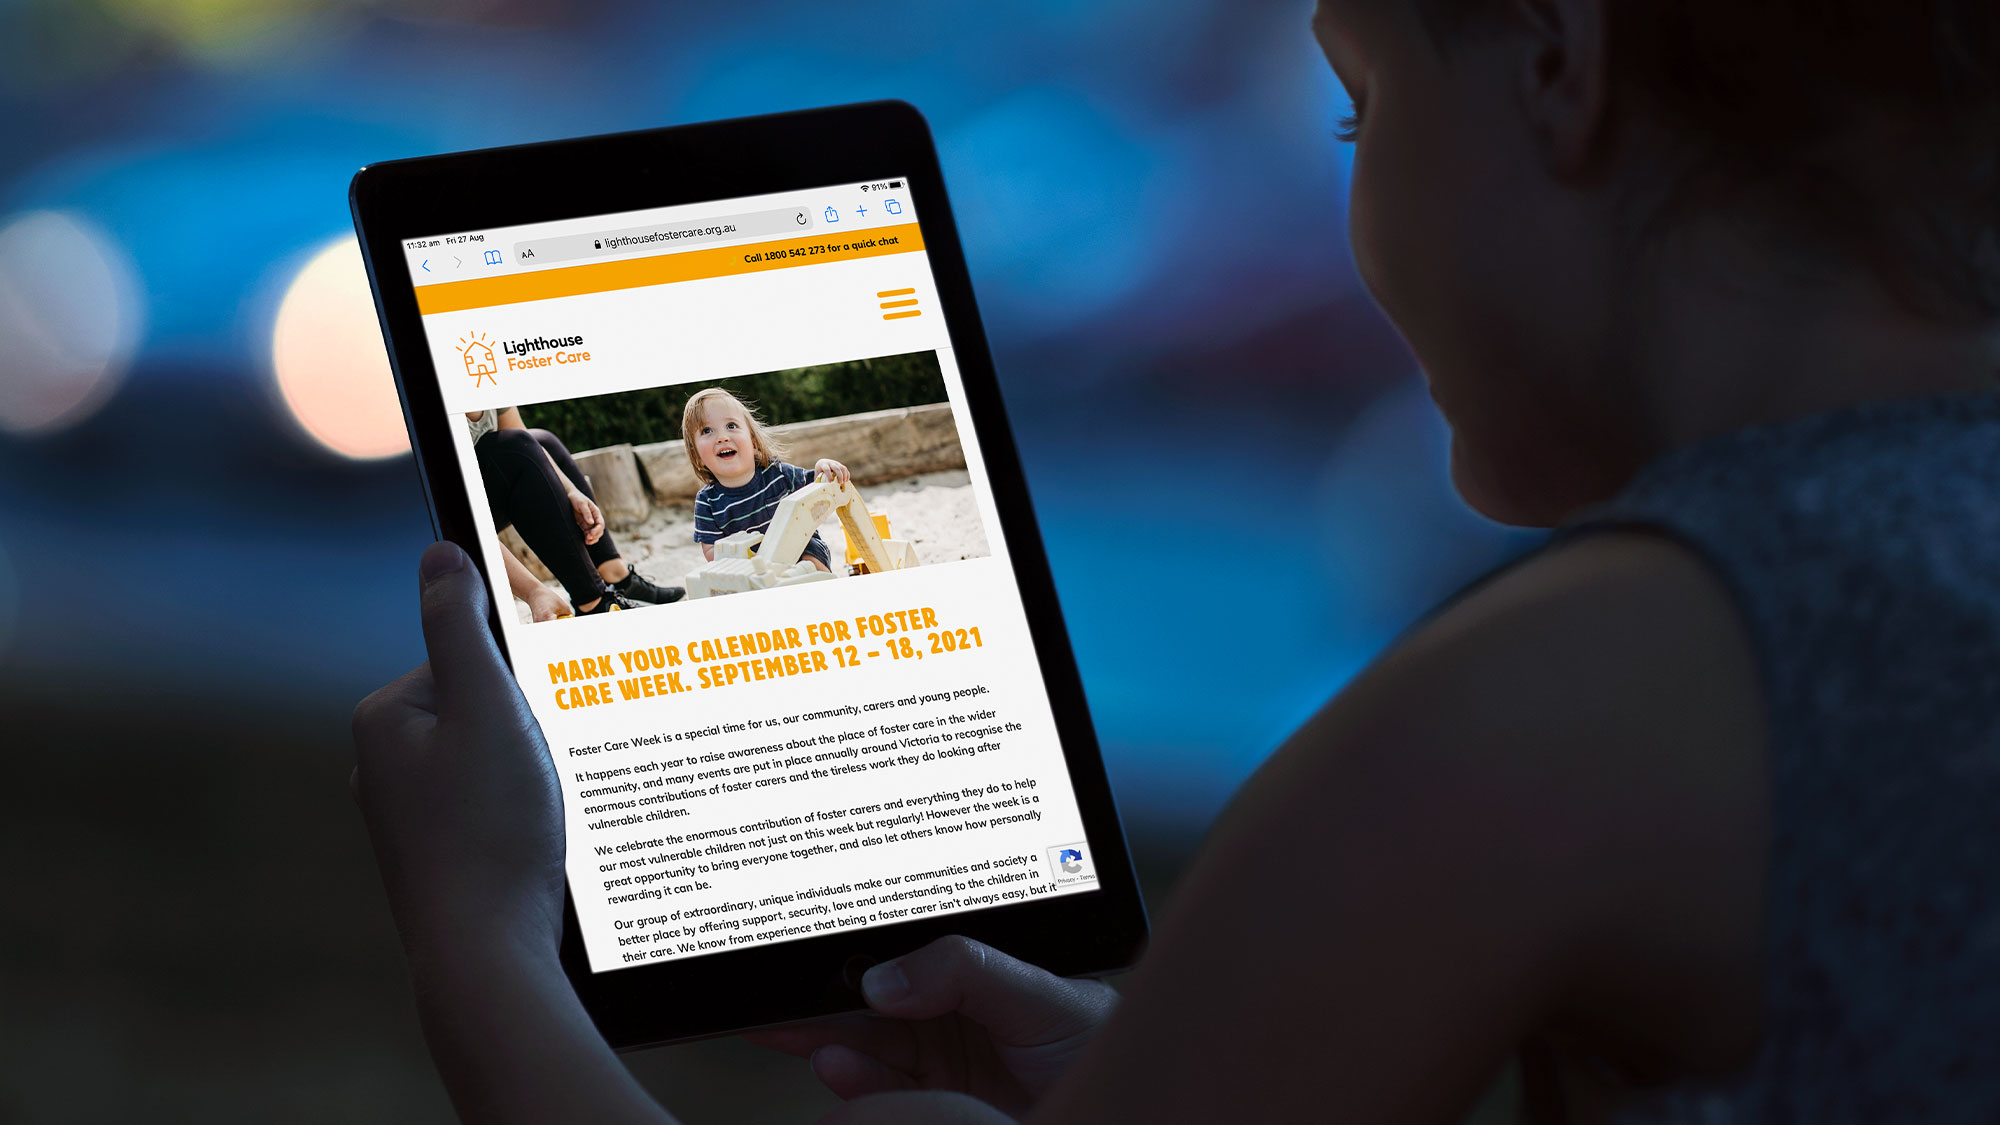 not for profit website Lighthouse Foster Care by The Animals